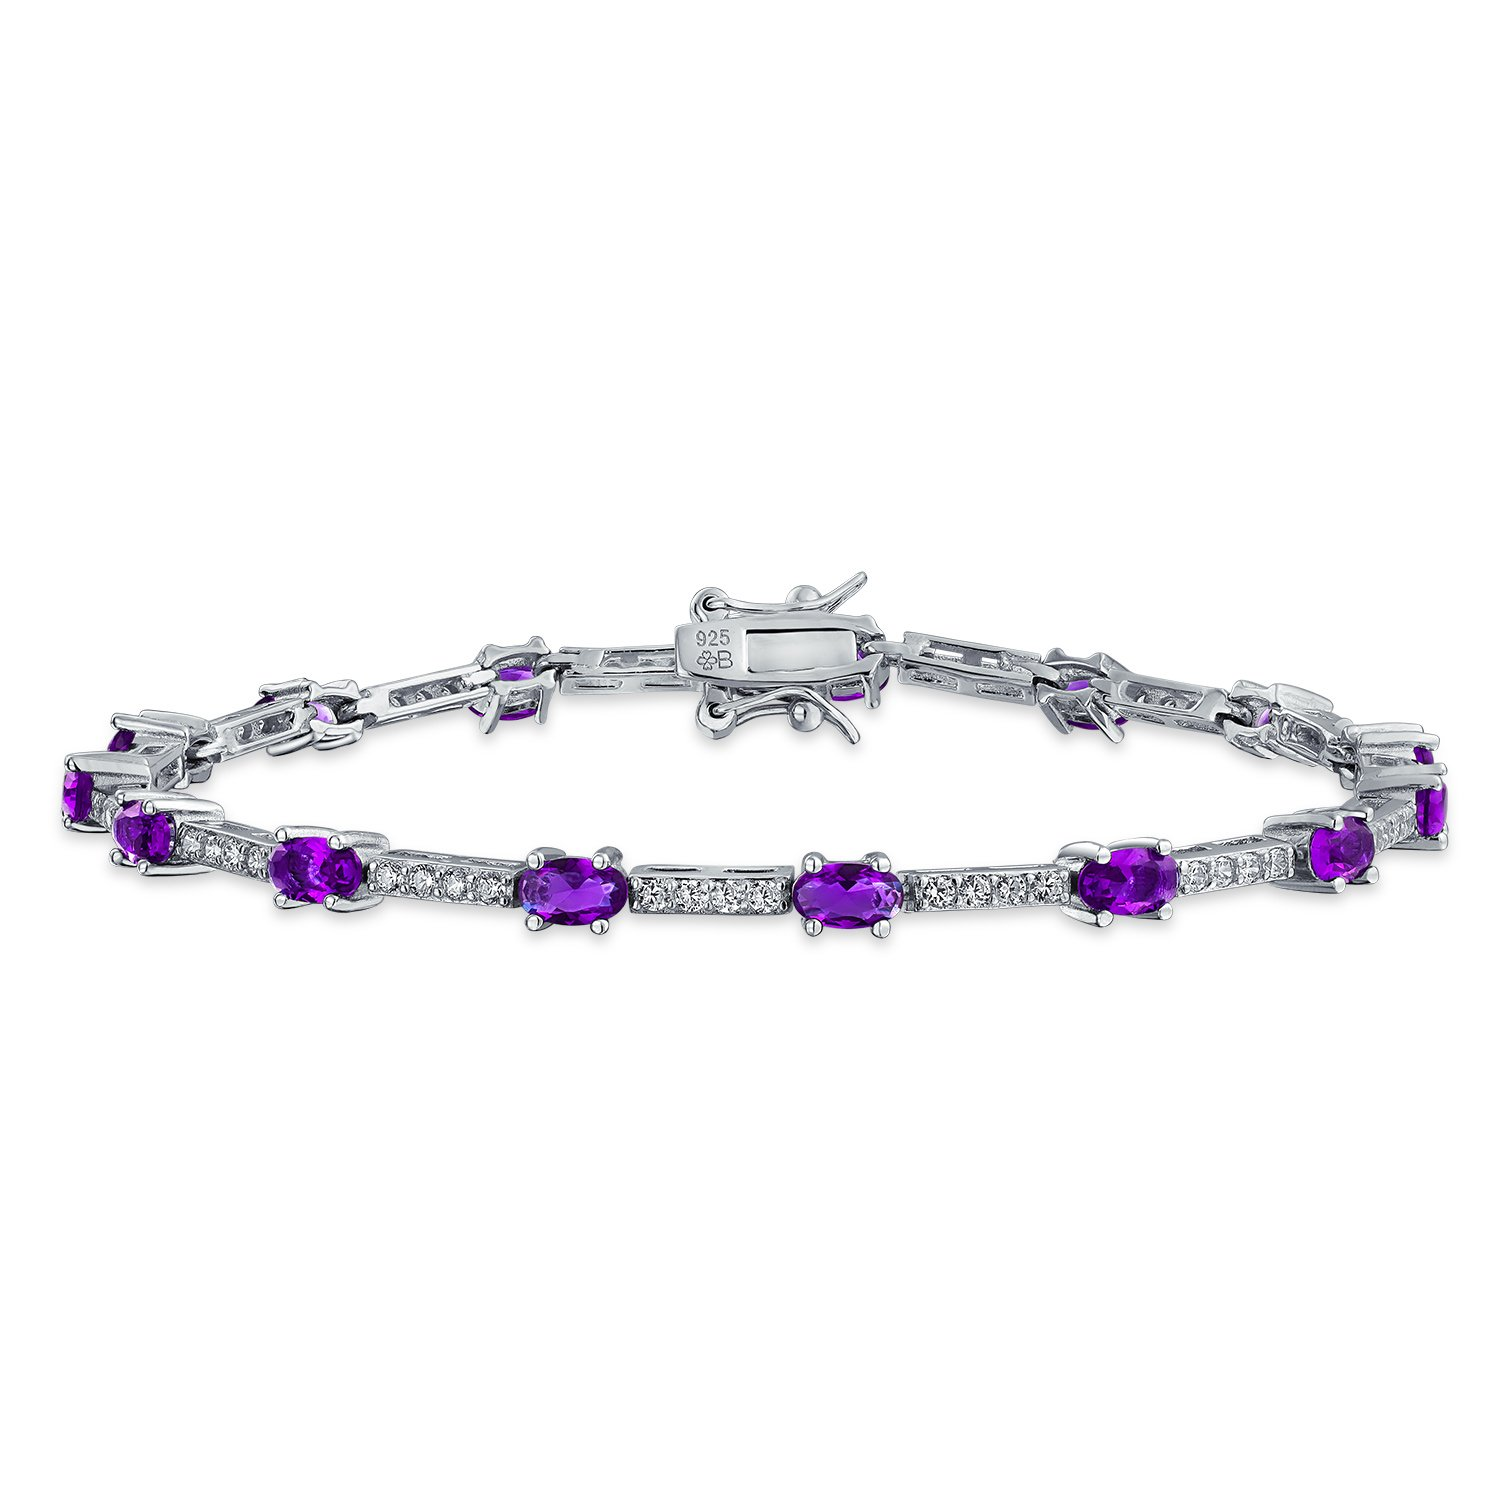 Vintage Style Simulated Amethyst CZ Tennis Bracelet Silver